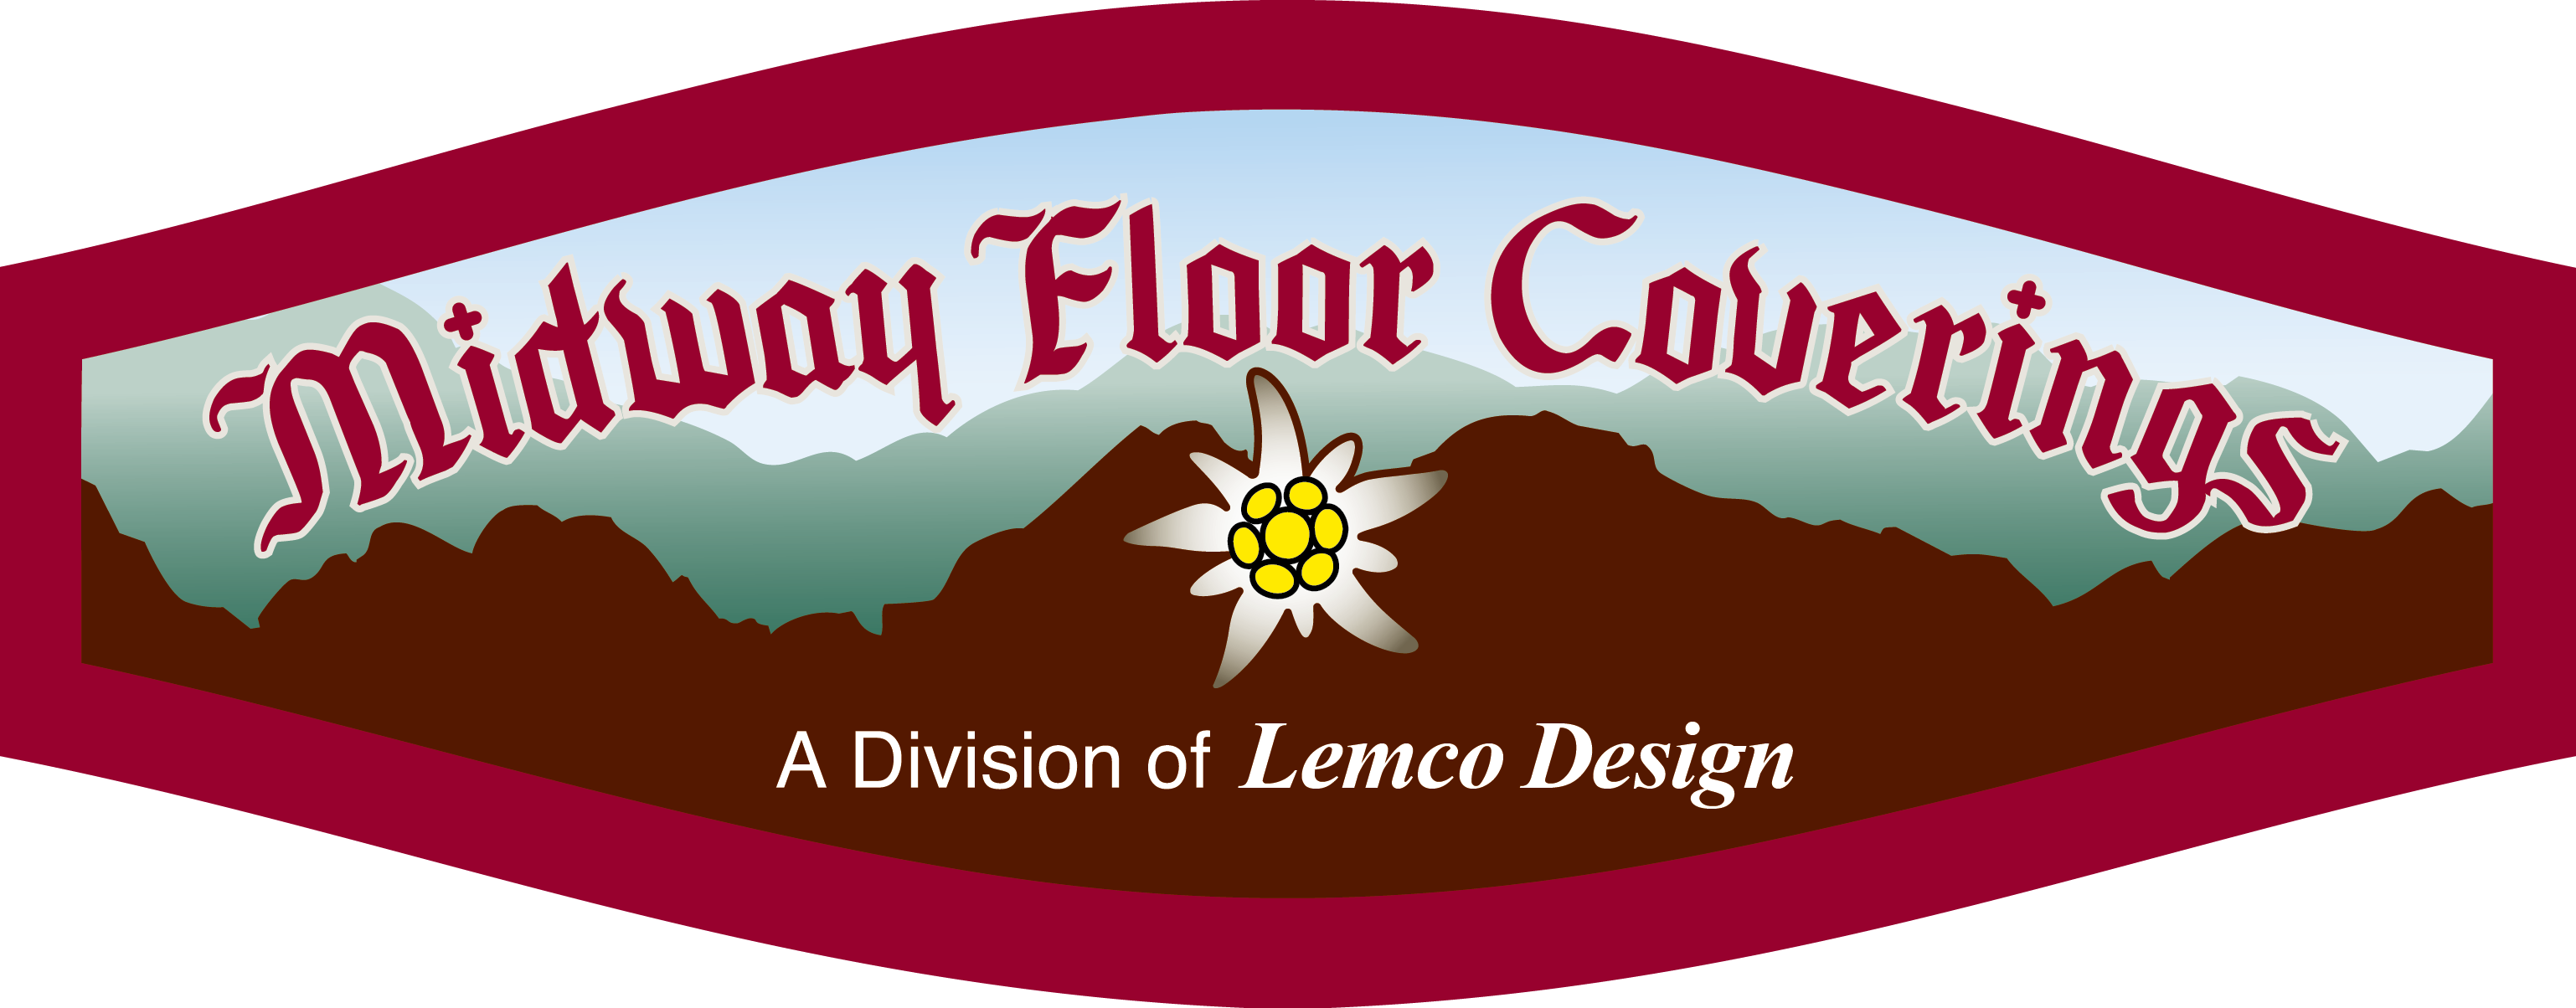 Welcome Midway Floor Coverings